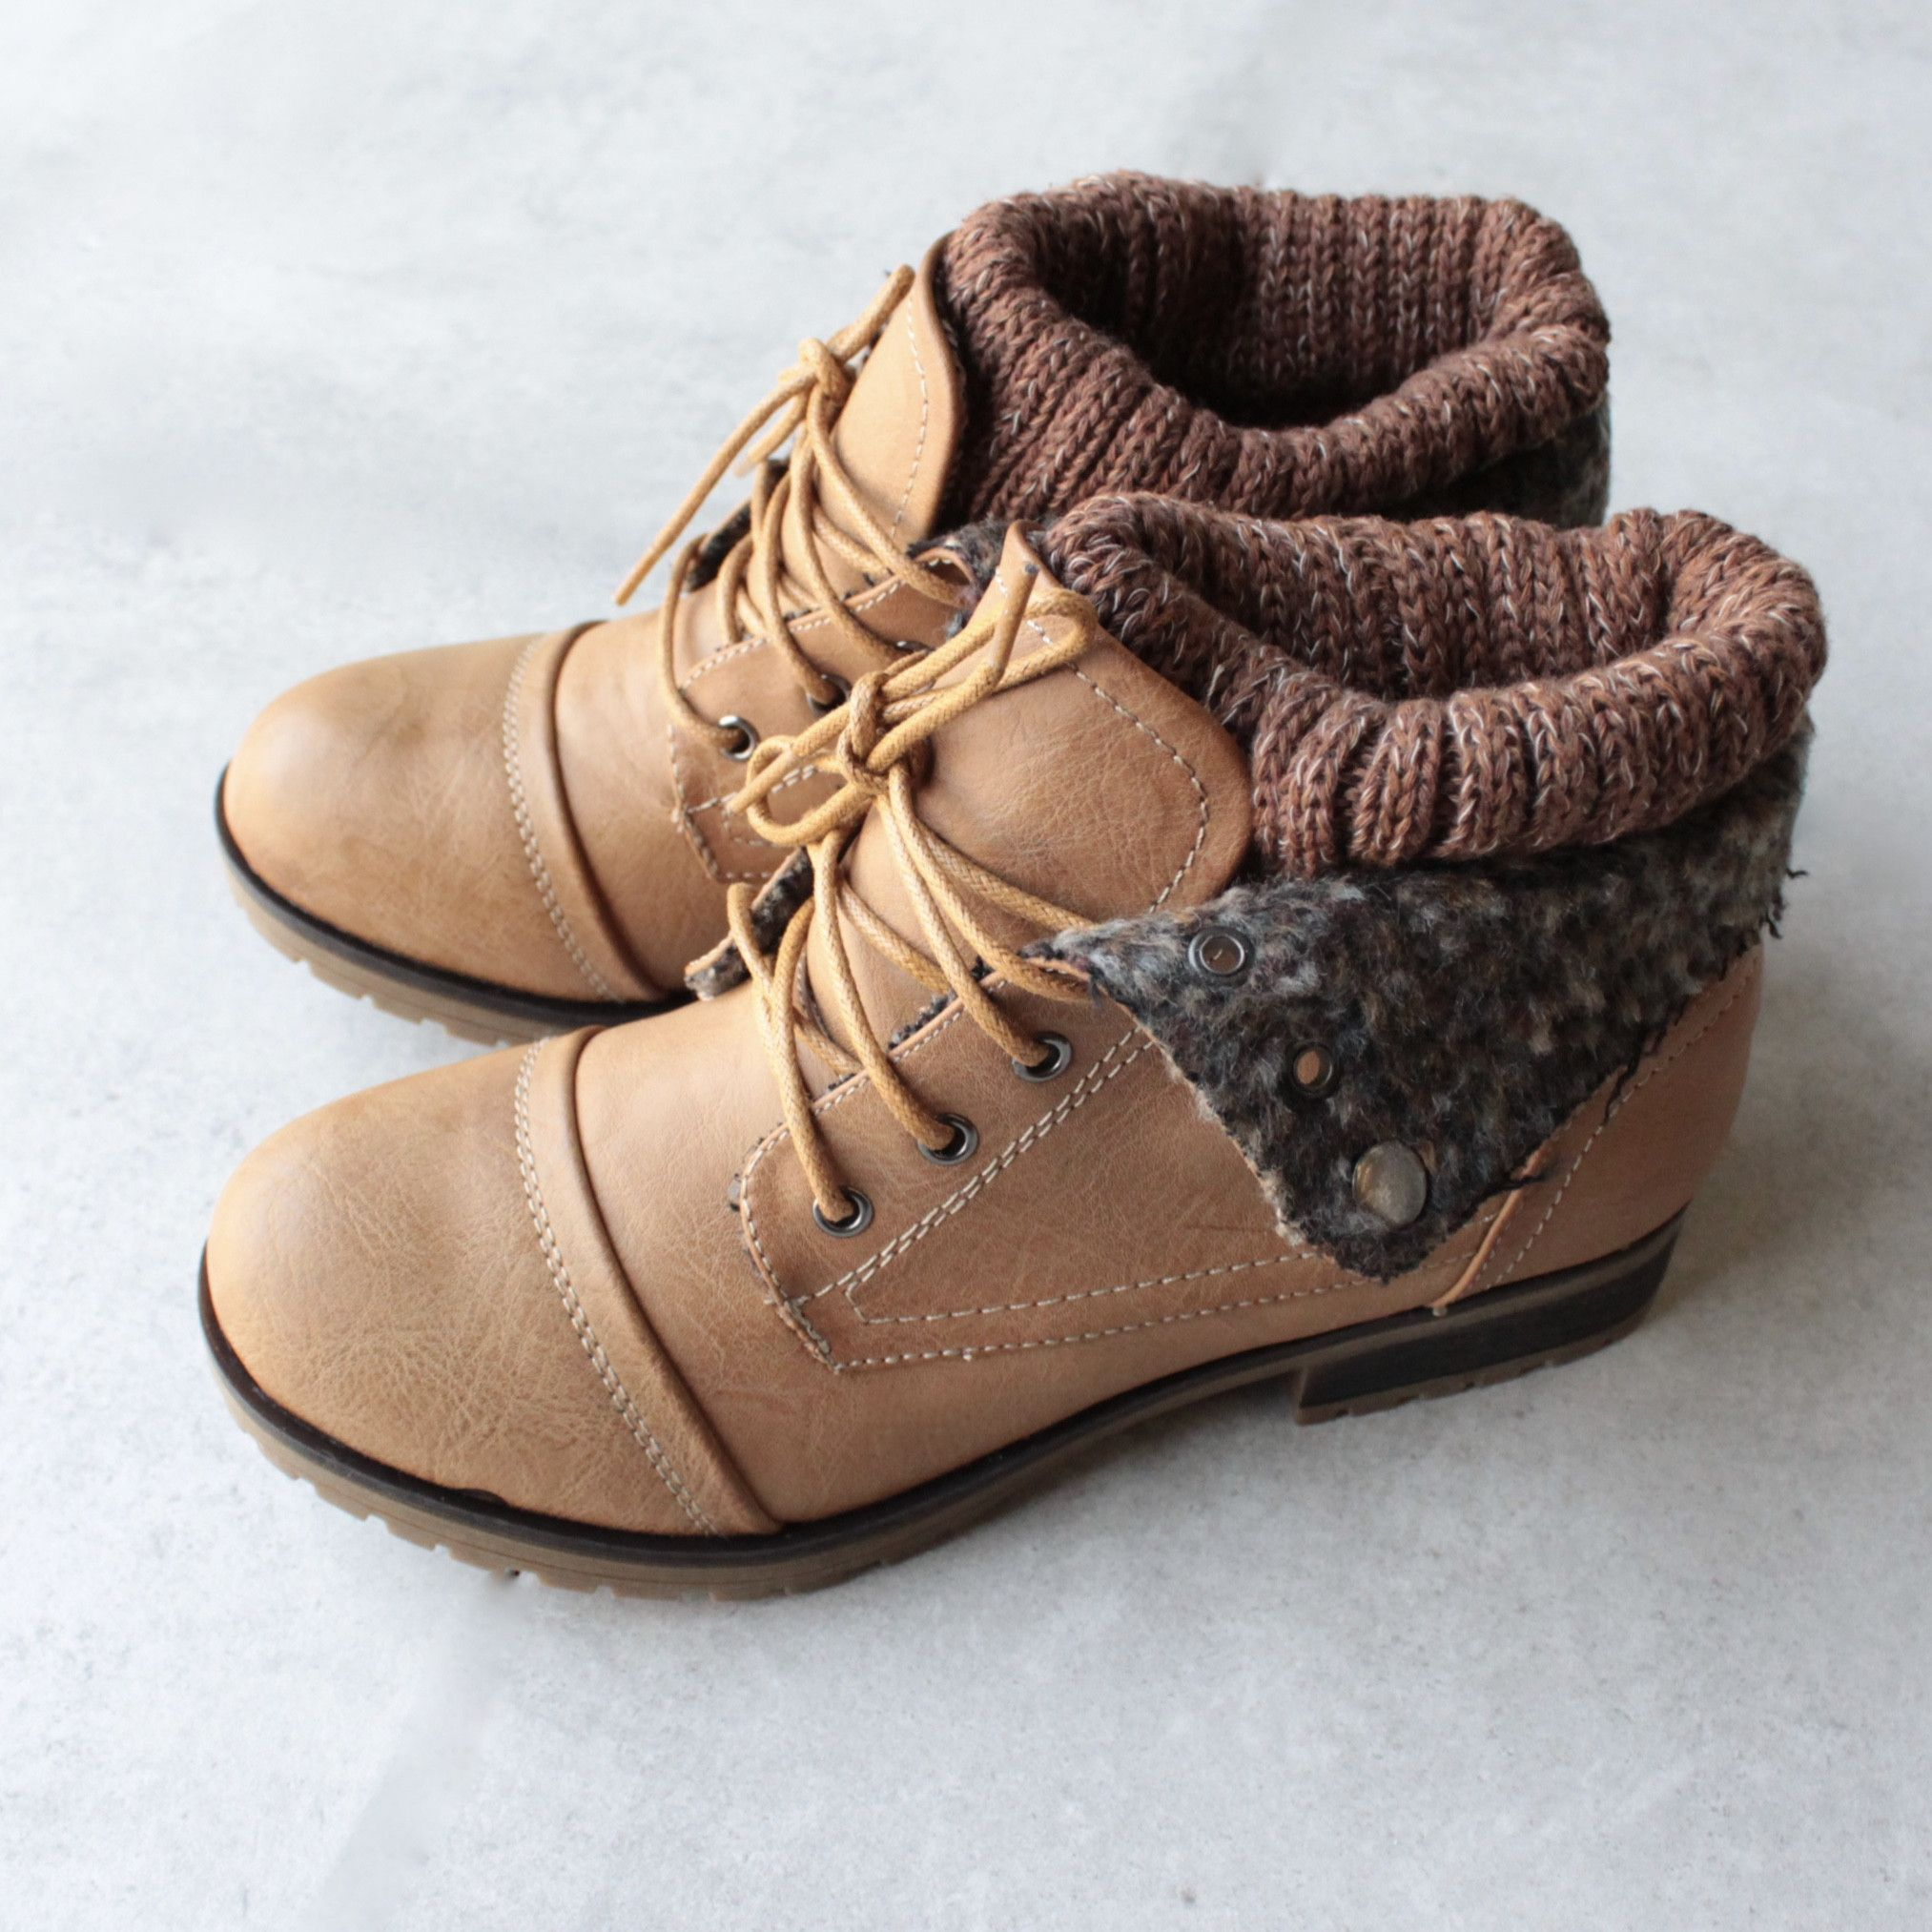 cozy womens sweater boots - tan - shophearts - 1